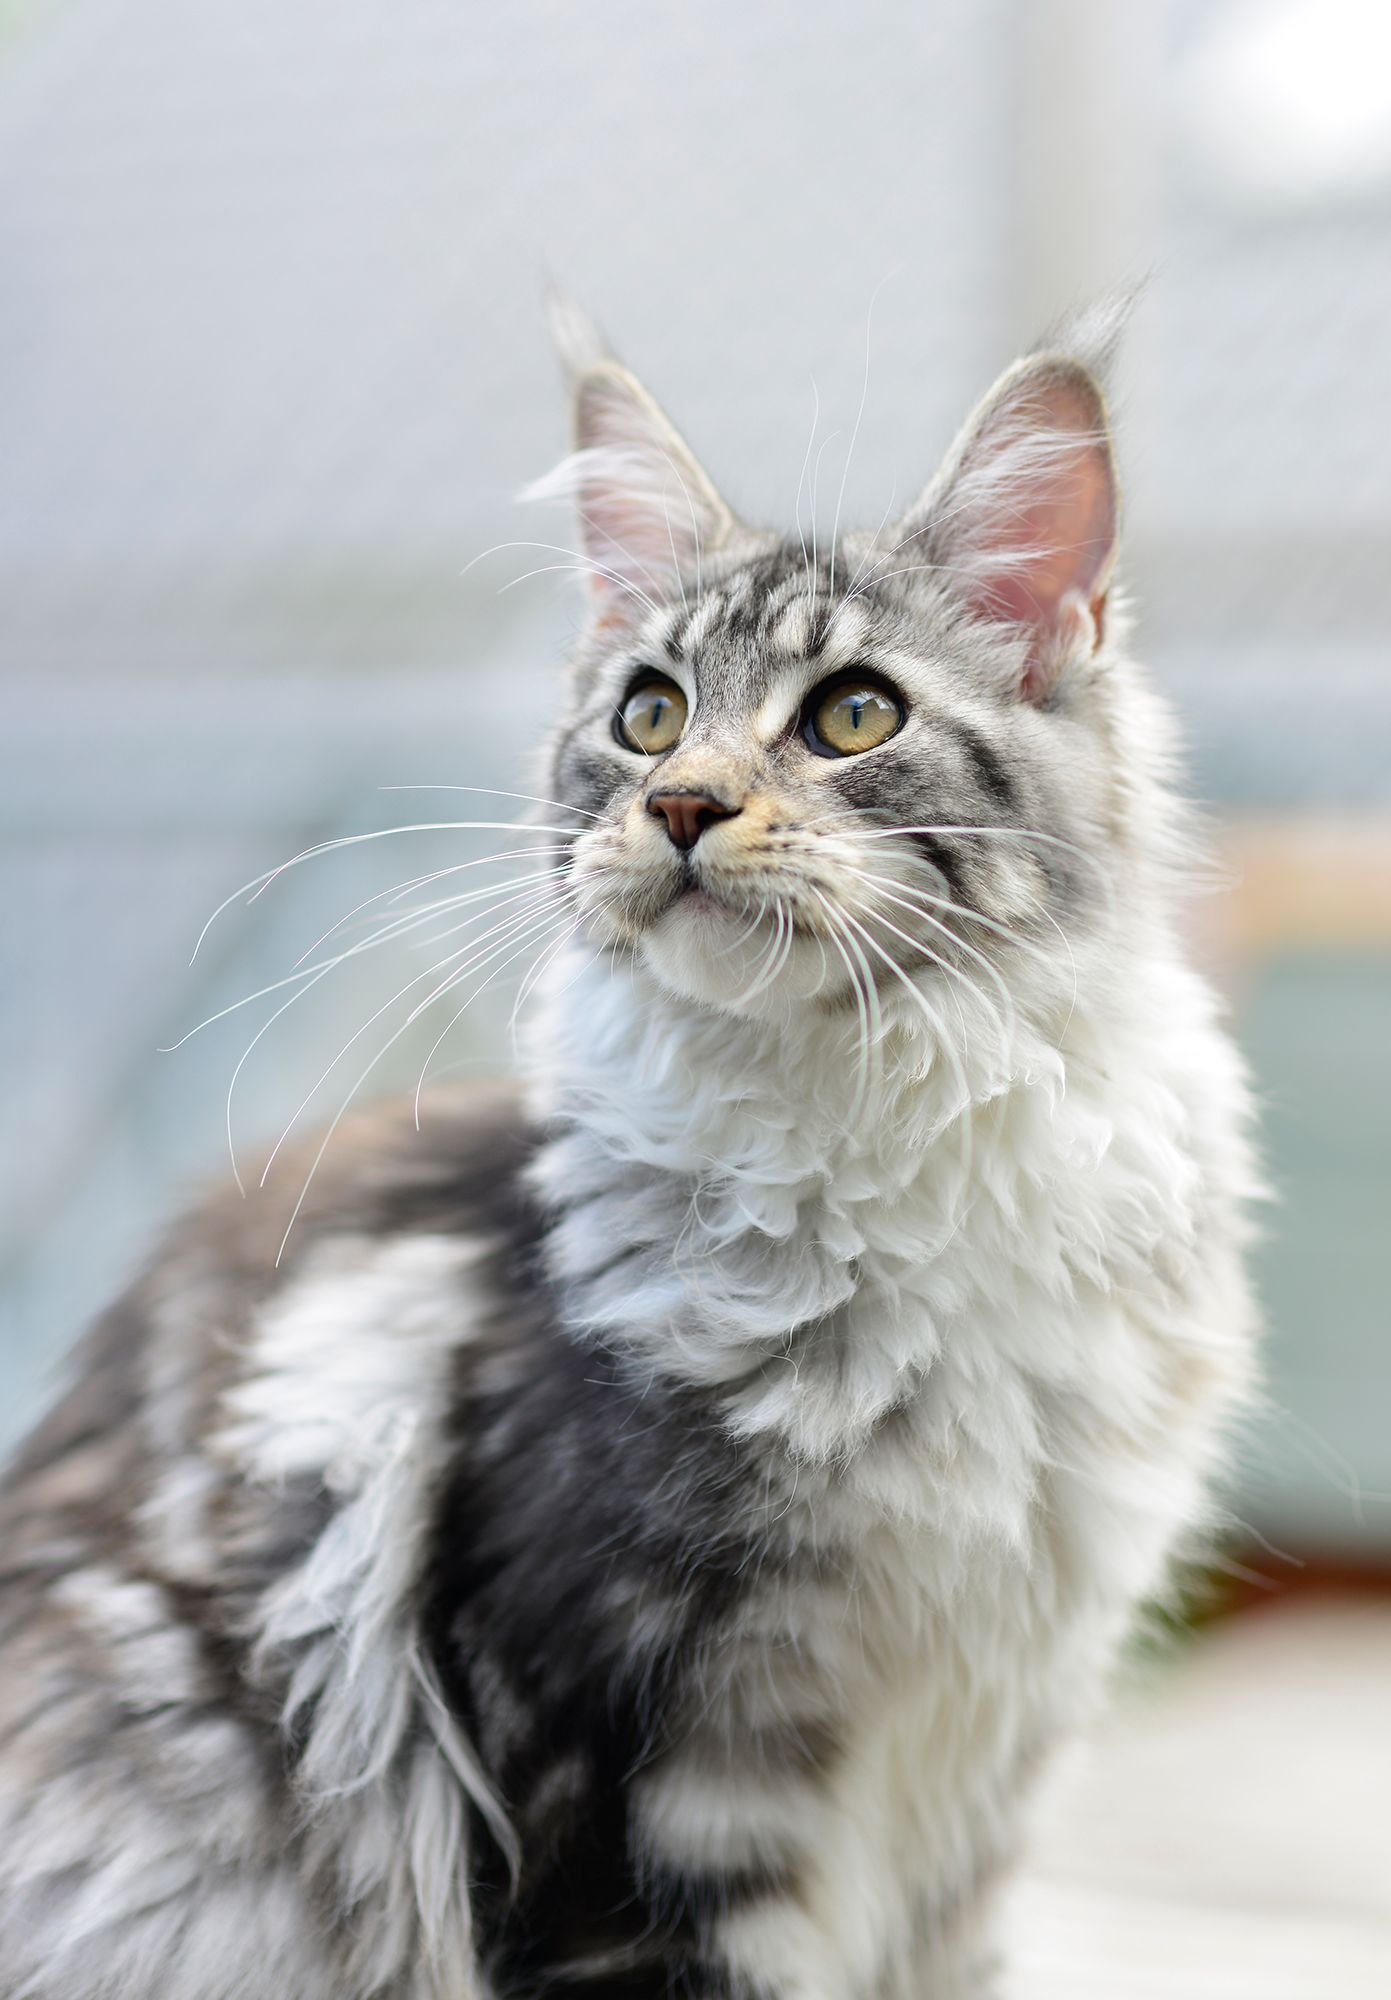 Experts Say These Are The Smartest Cat Breeds In 2020 Cat Breeds Best Cat Breeds Cute Cats And Dogs